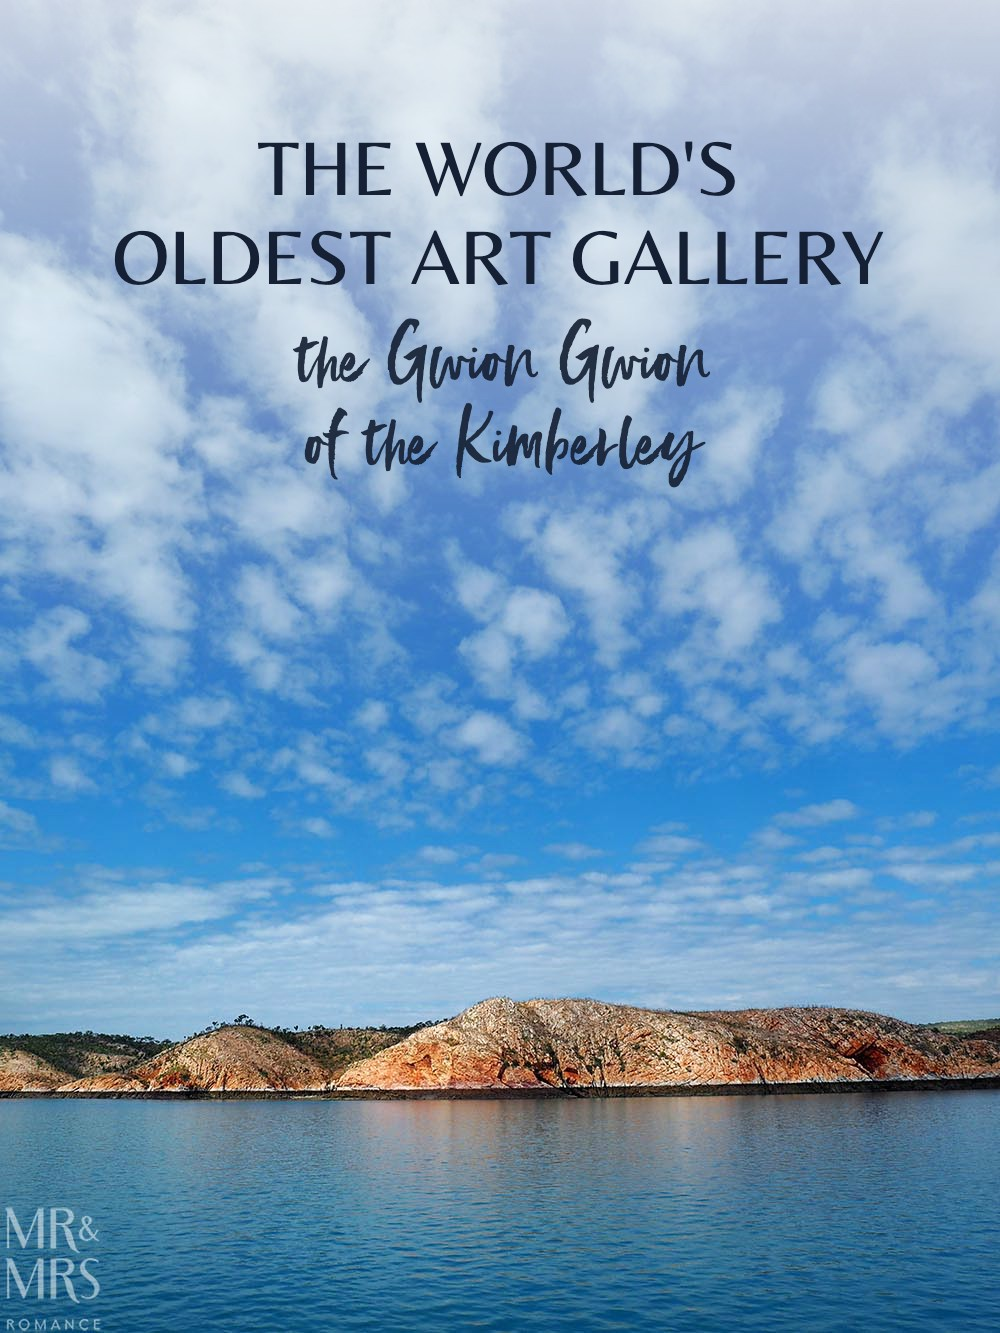 Ancient art galleries in the Kimberley, Western Australia